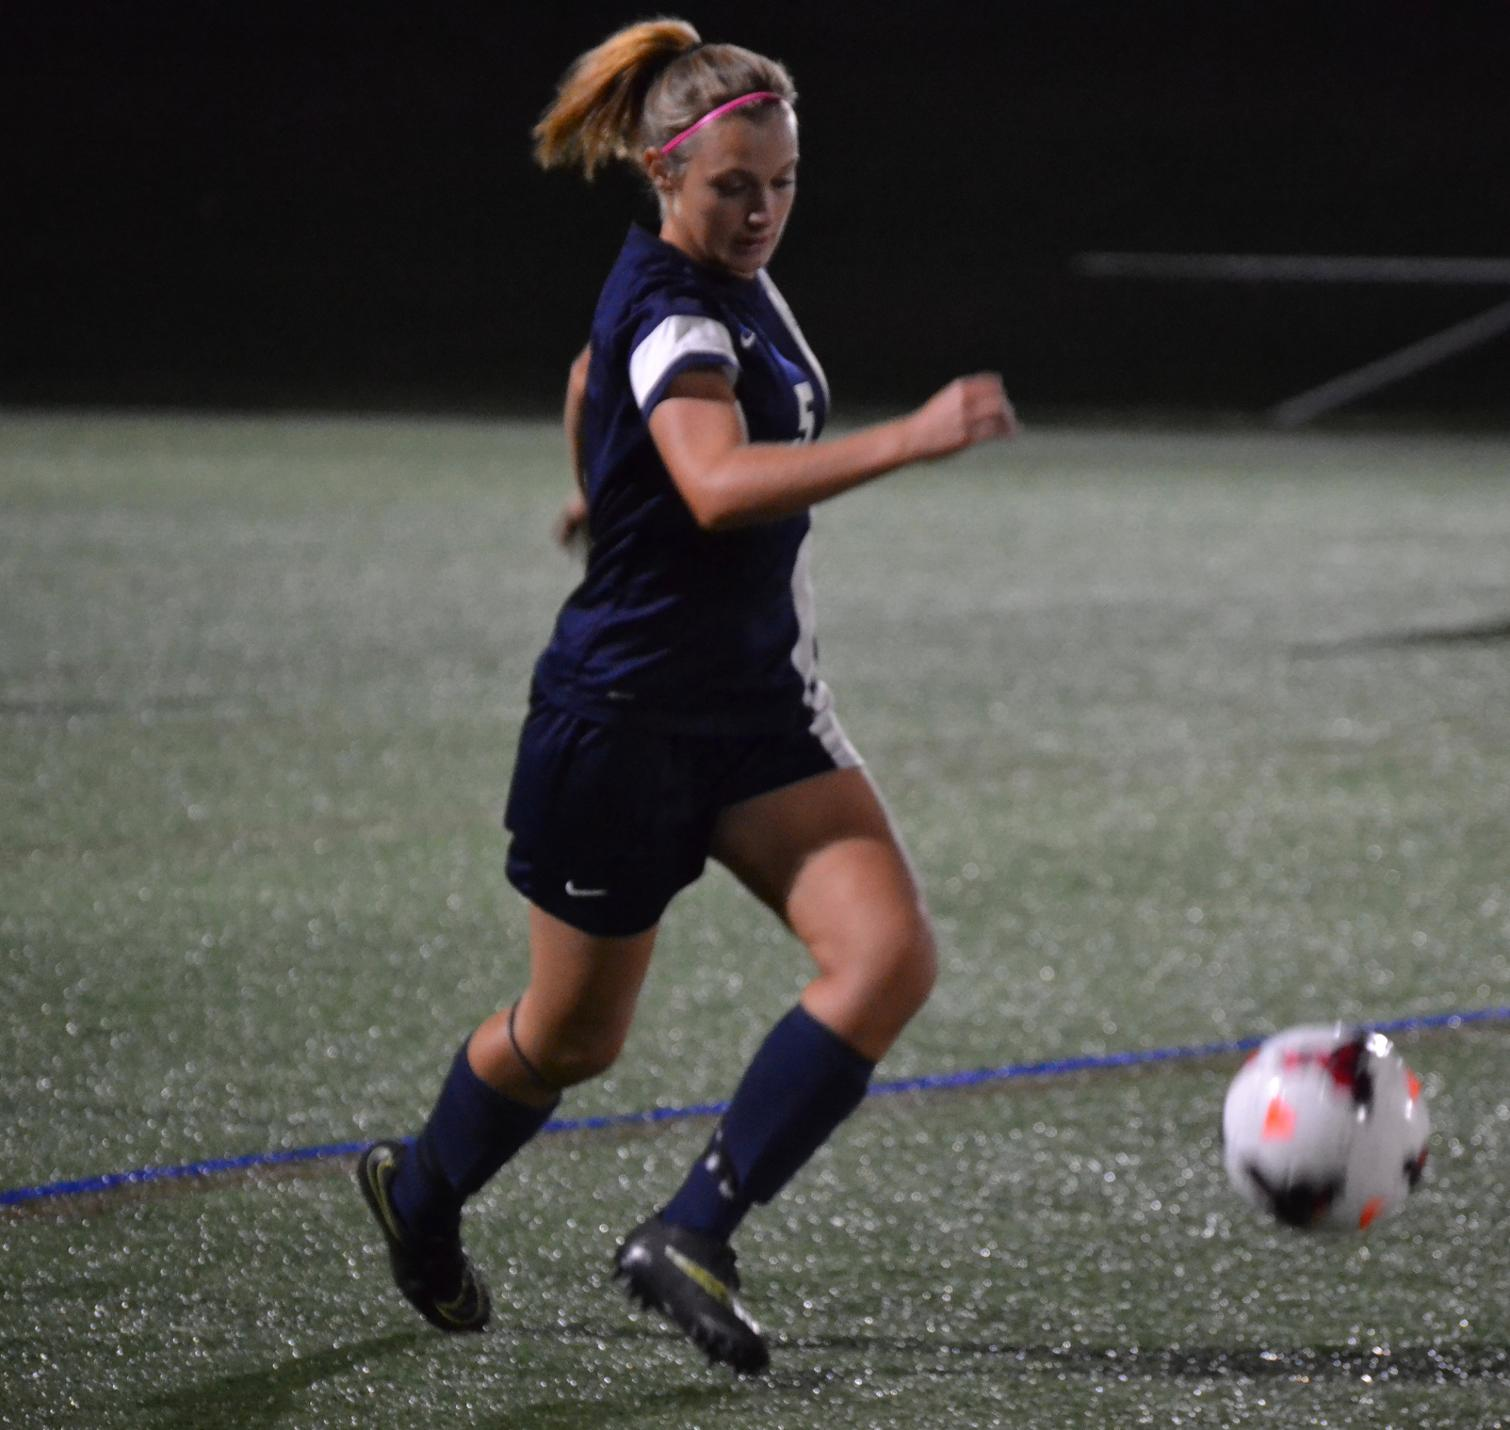 Women's Soccer Falls to NYU, 4-0, in Season Debut